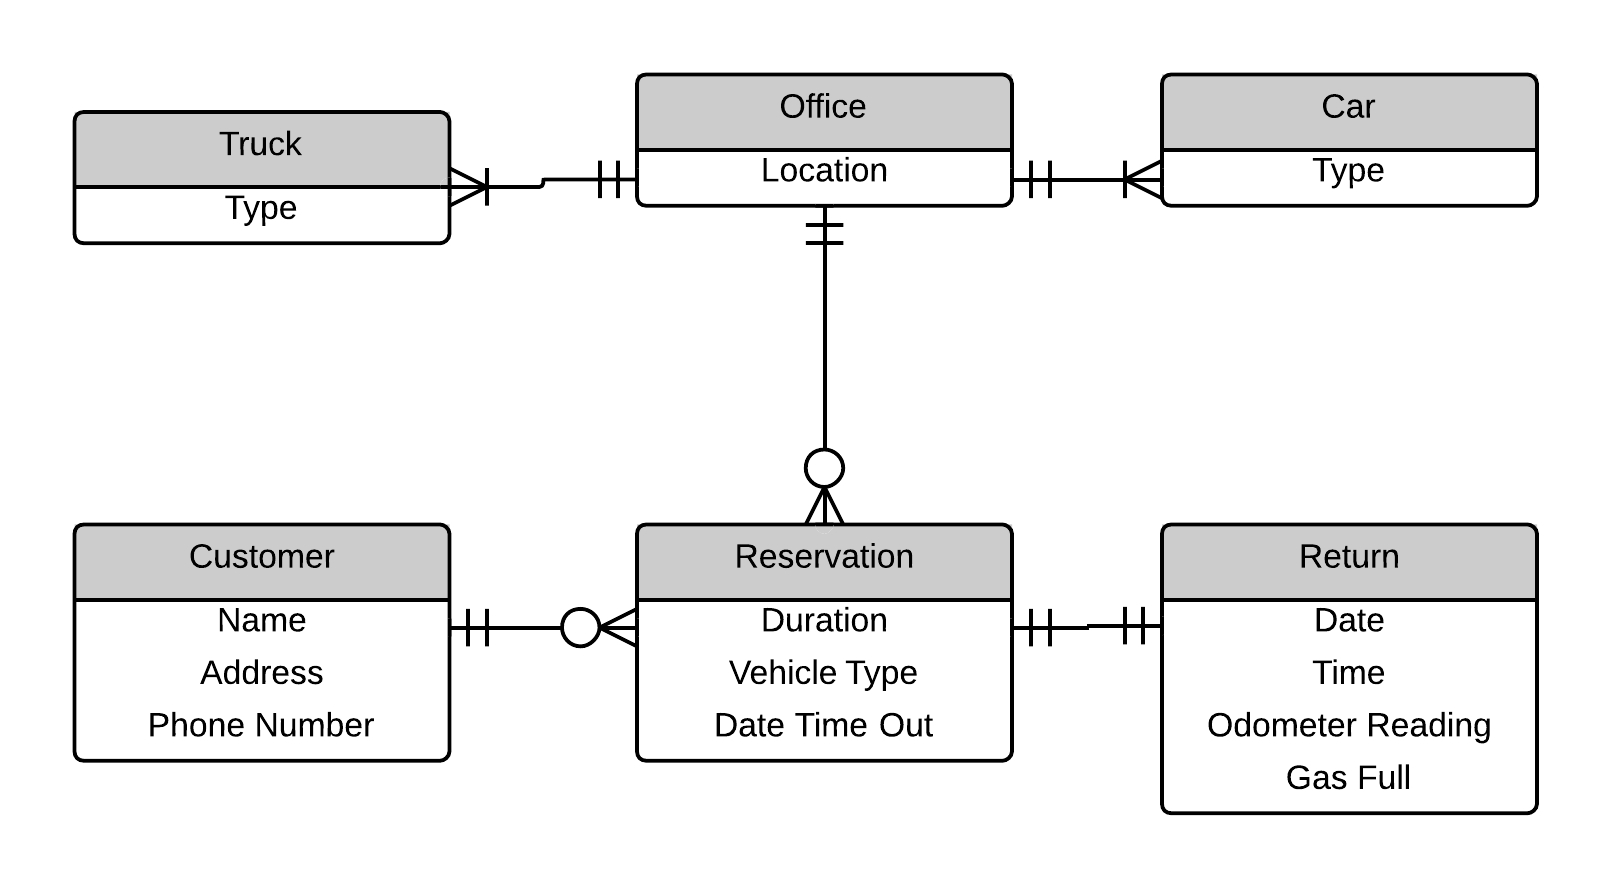 Video Rental System Entity Relationship Diagram Example for Er Diagram Video